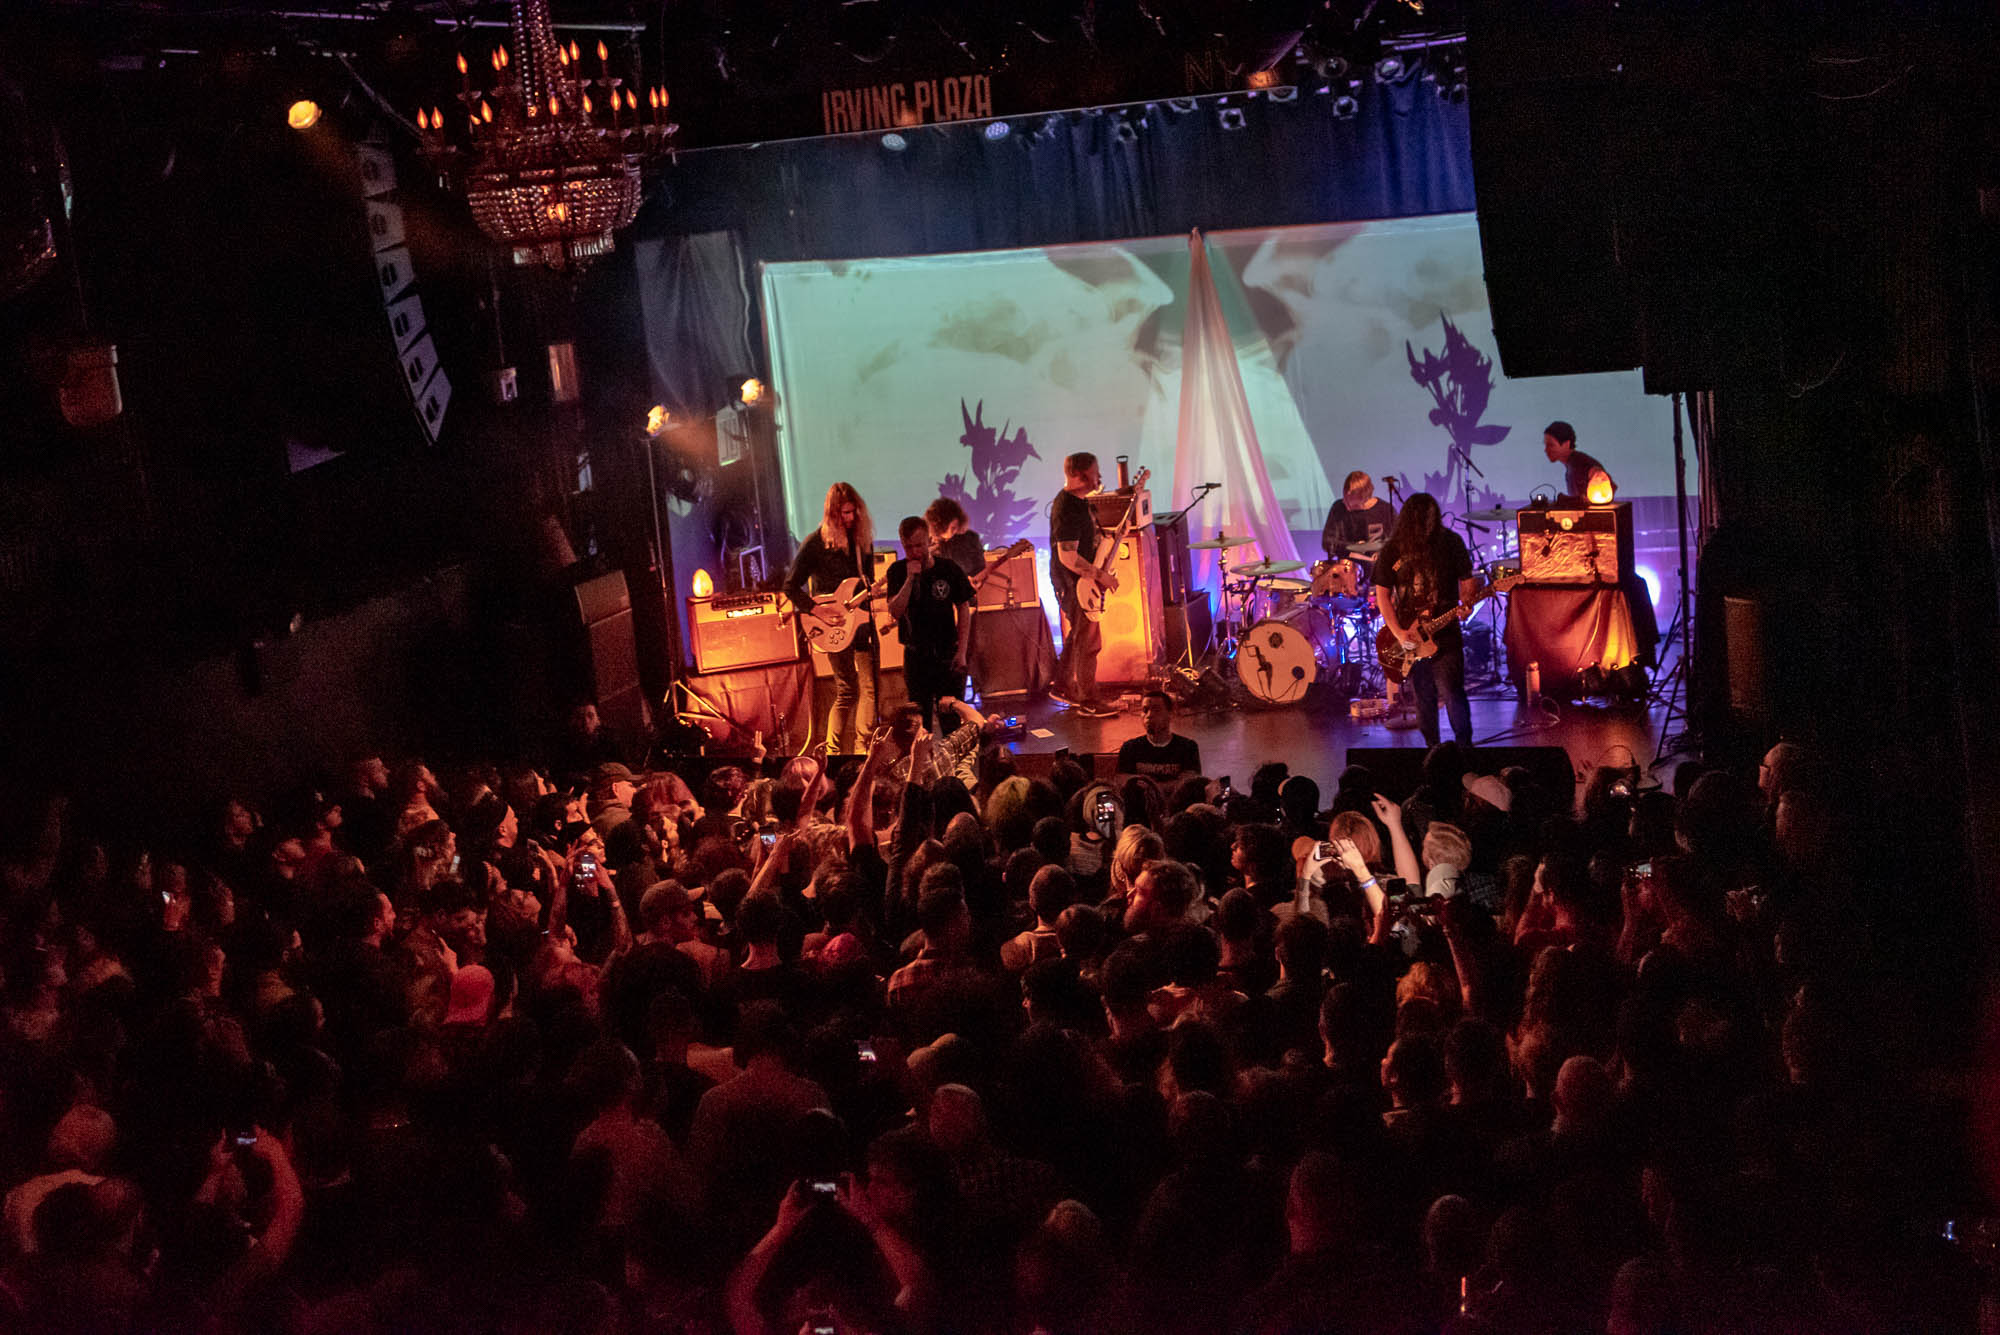 La Dispute at Irving Plaza on Wednesday, April 17, 2019.